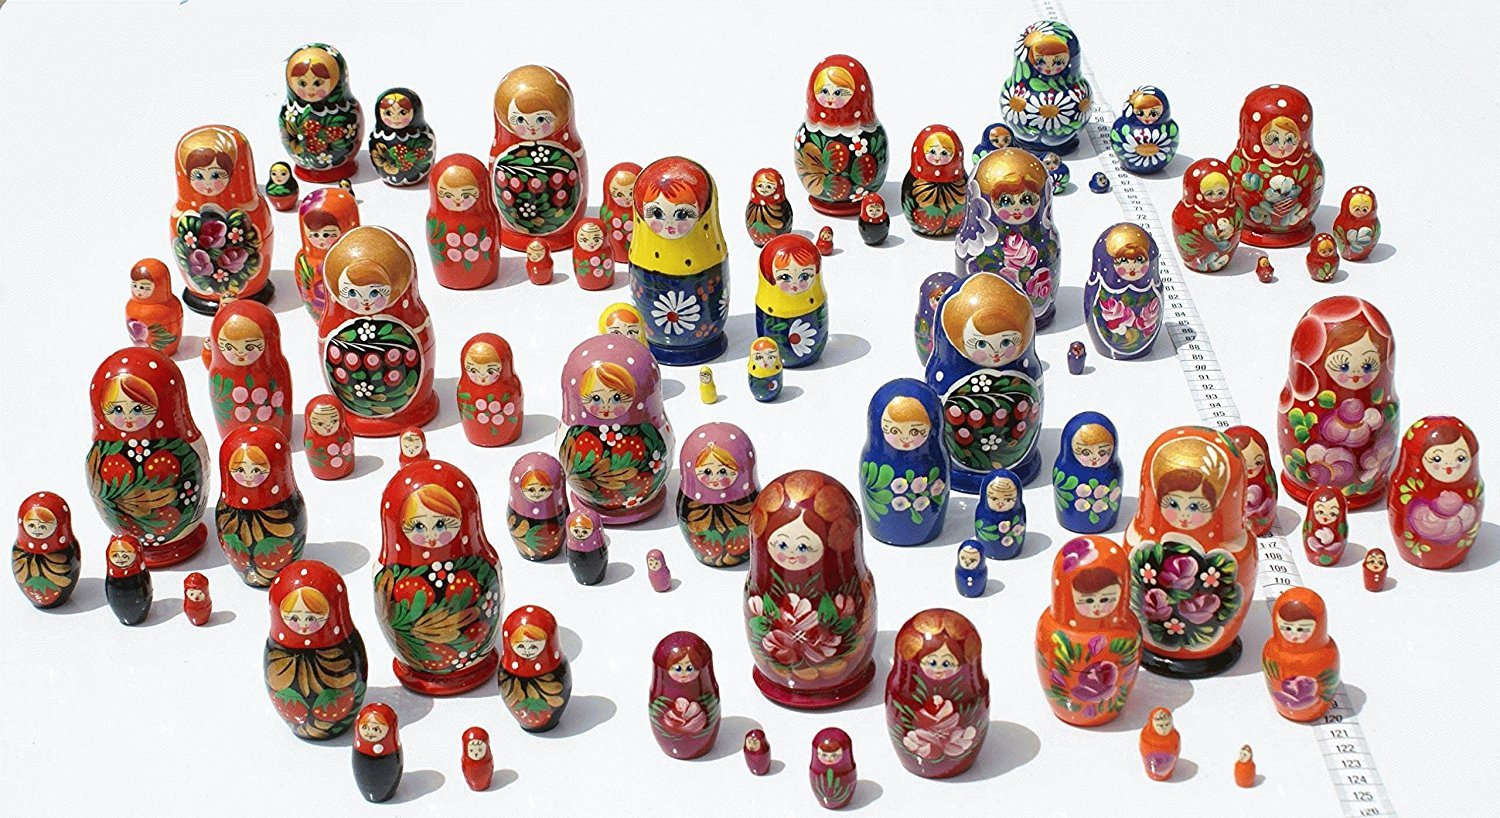 Set of 2 5-Pieces Cute Nesting Stacking Wooden Dolls Matryoshka Babushka Russian Art